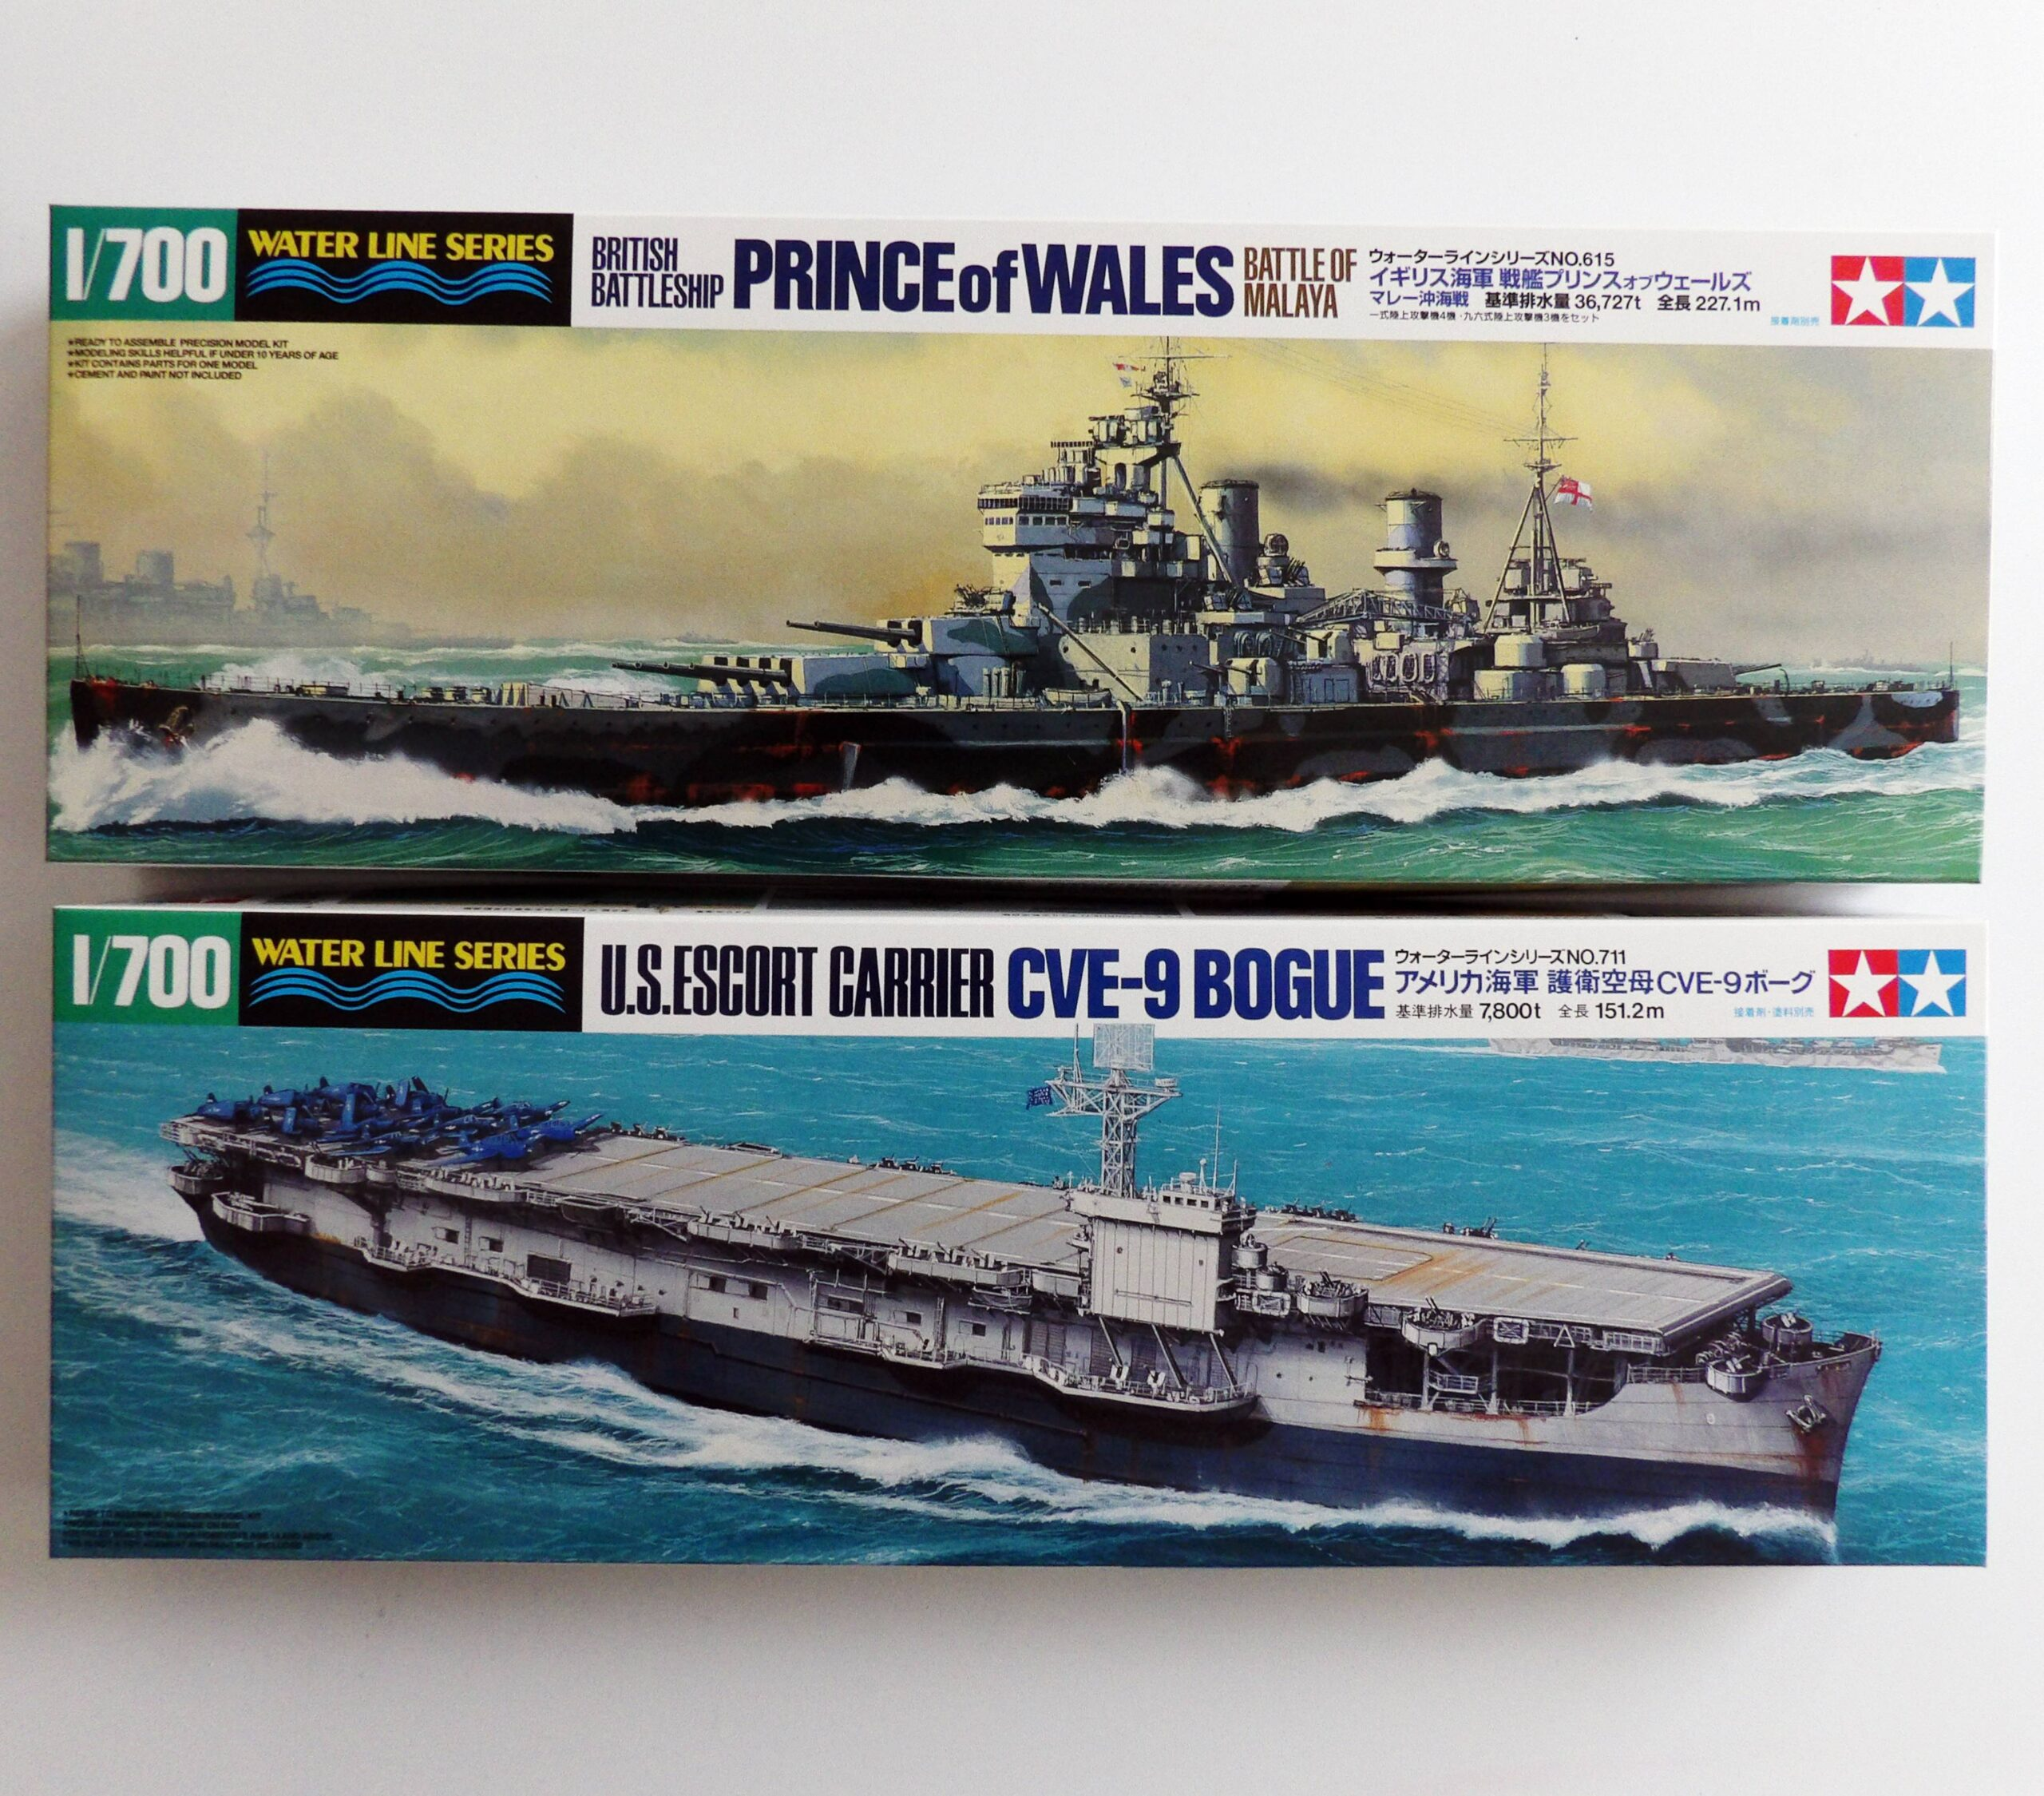 Tamiya Space Craft Model Shop Dundee Broughty Ferry Scotland